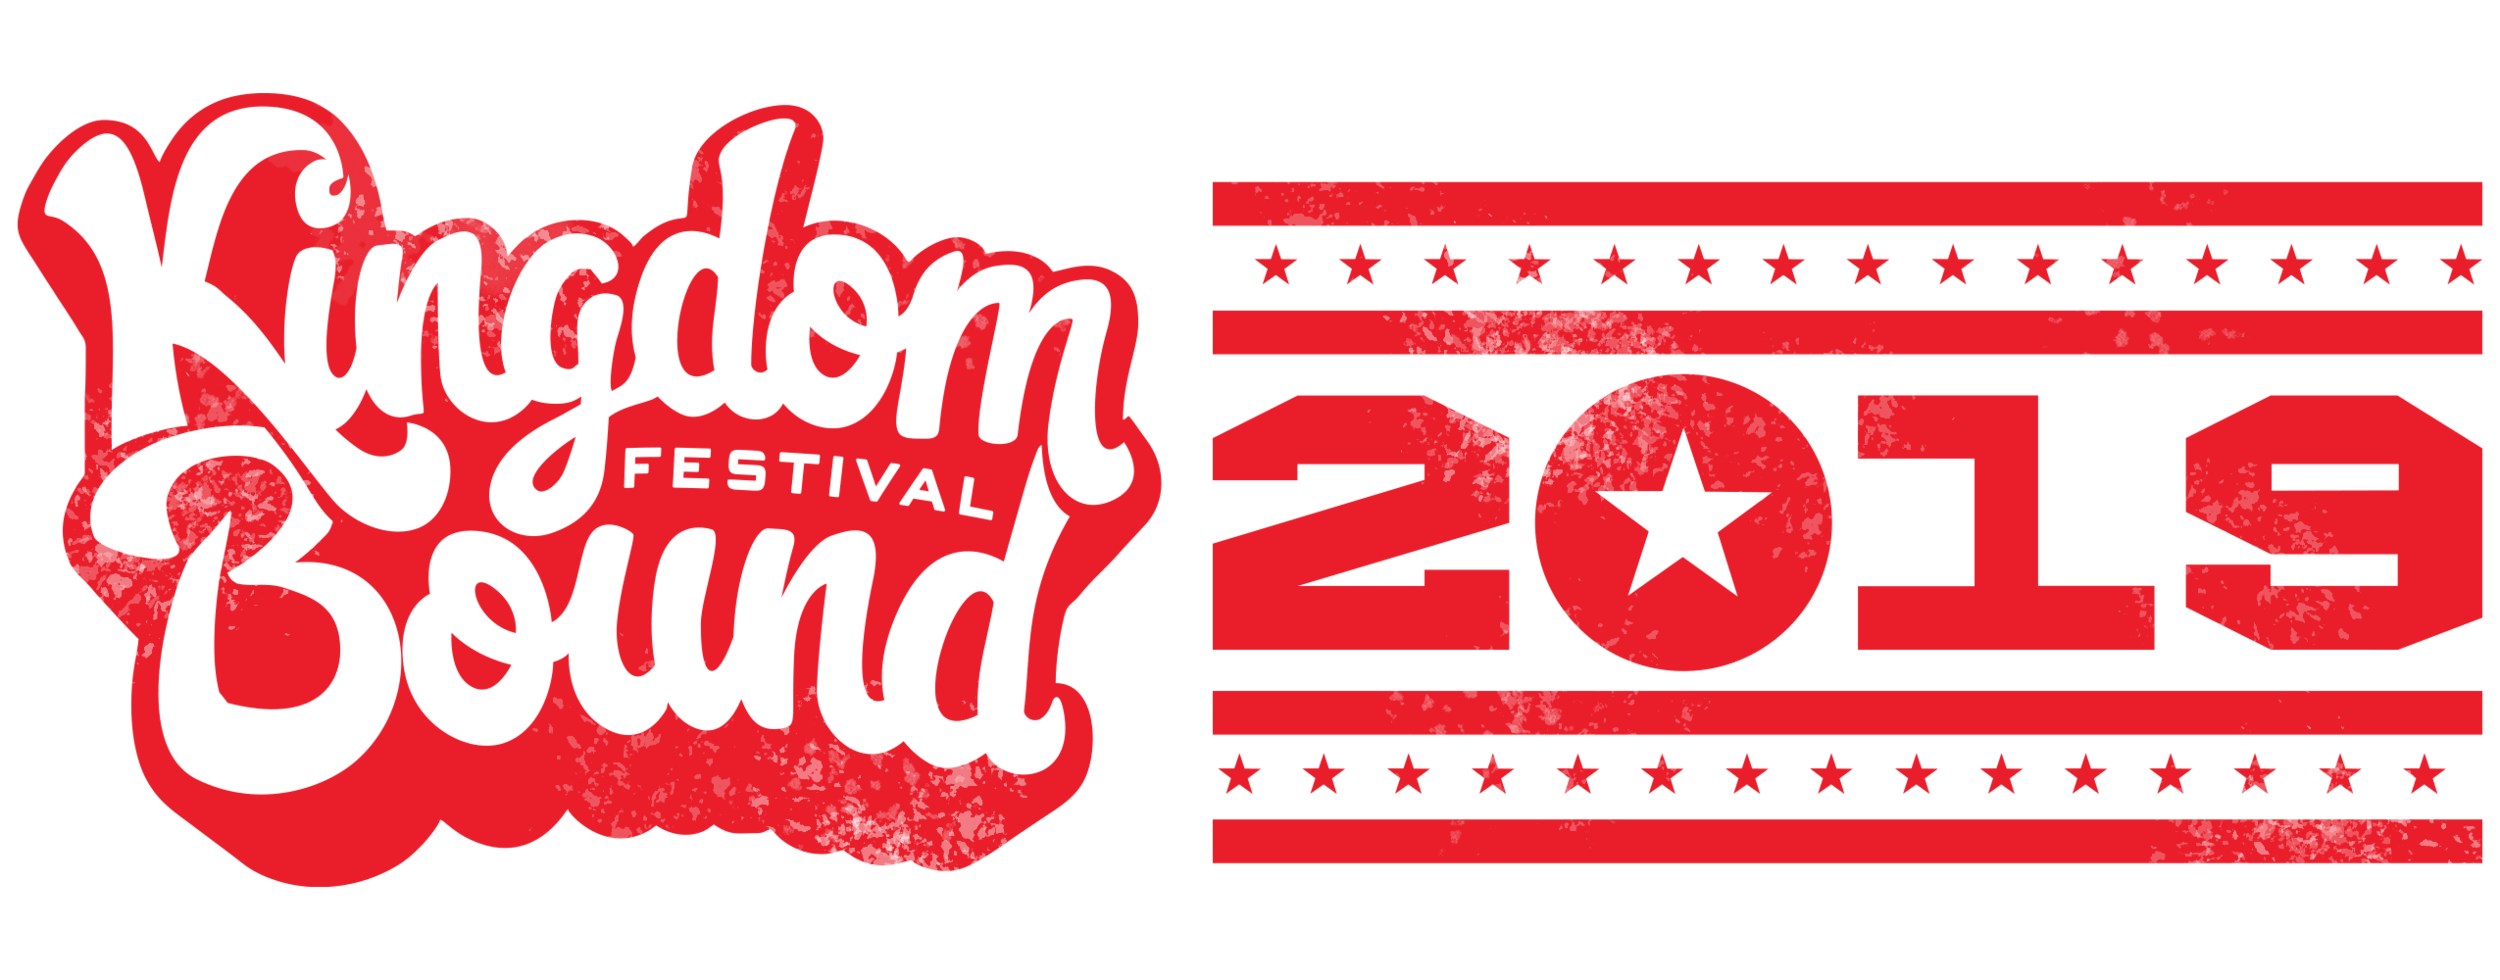 KB2019-Horizont-red.png